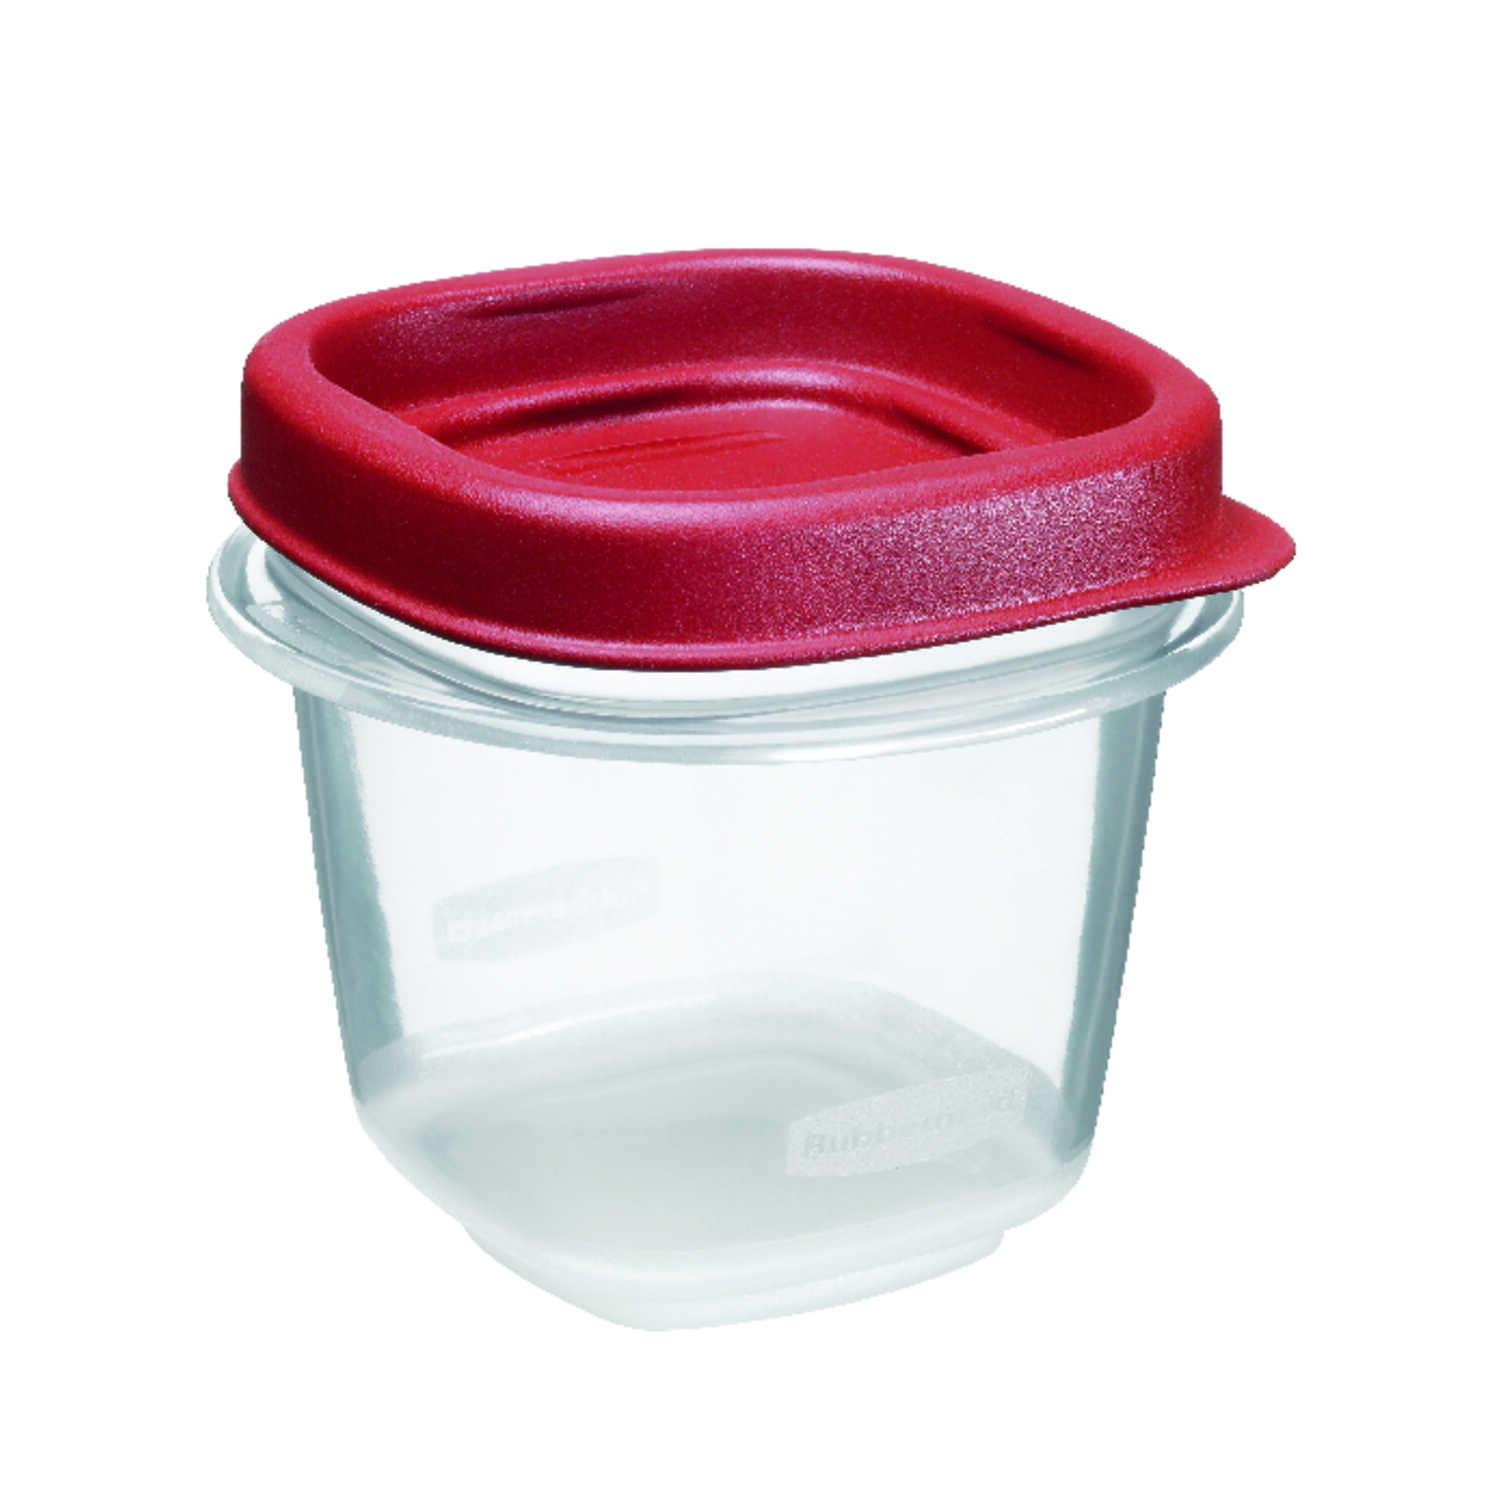 Rubbermaid  Food Storage Container  0.5 cups